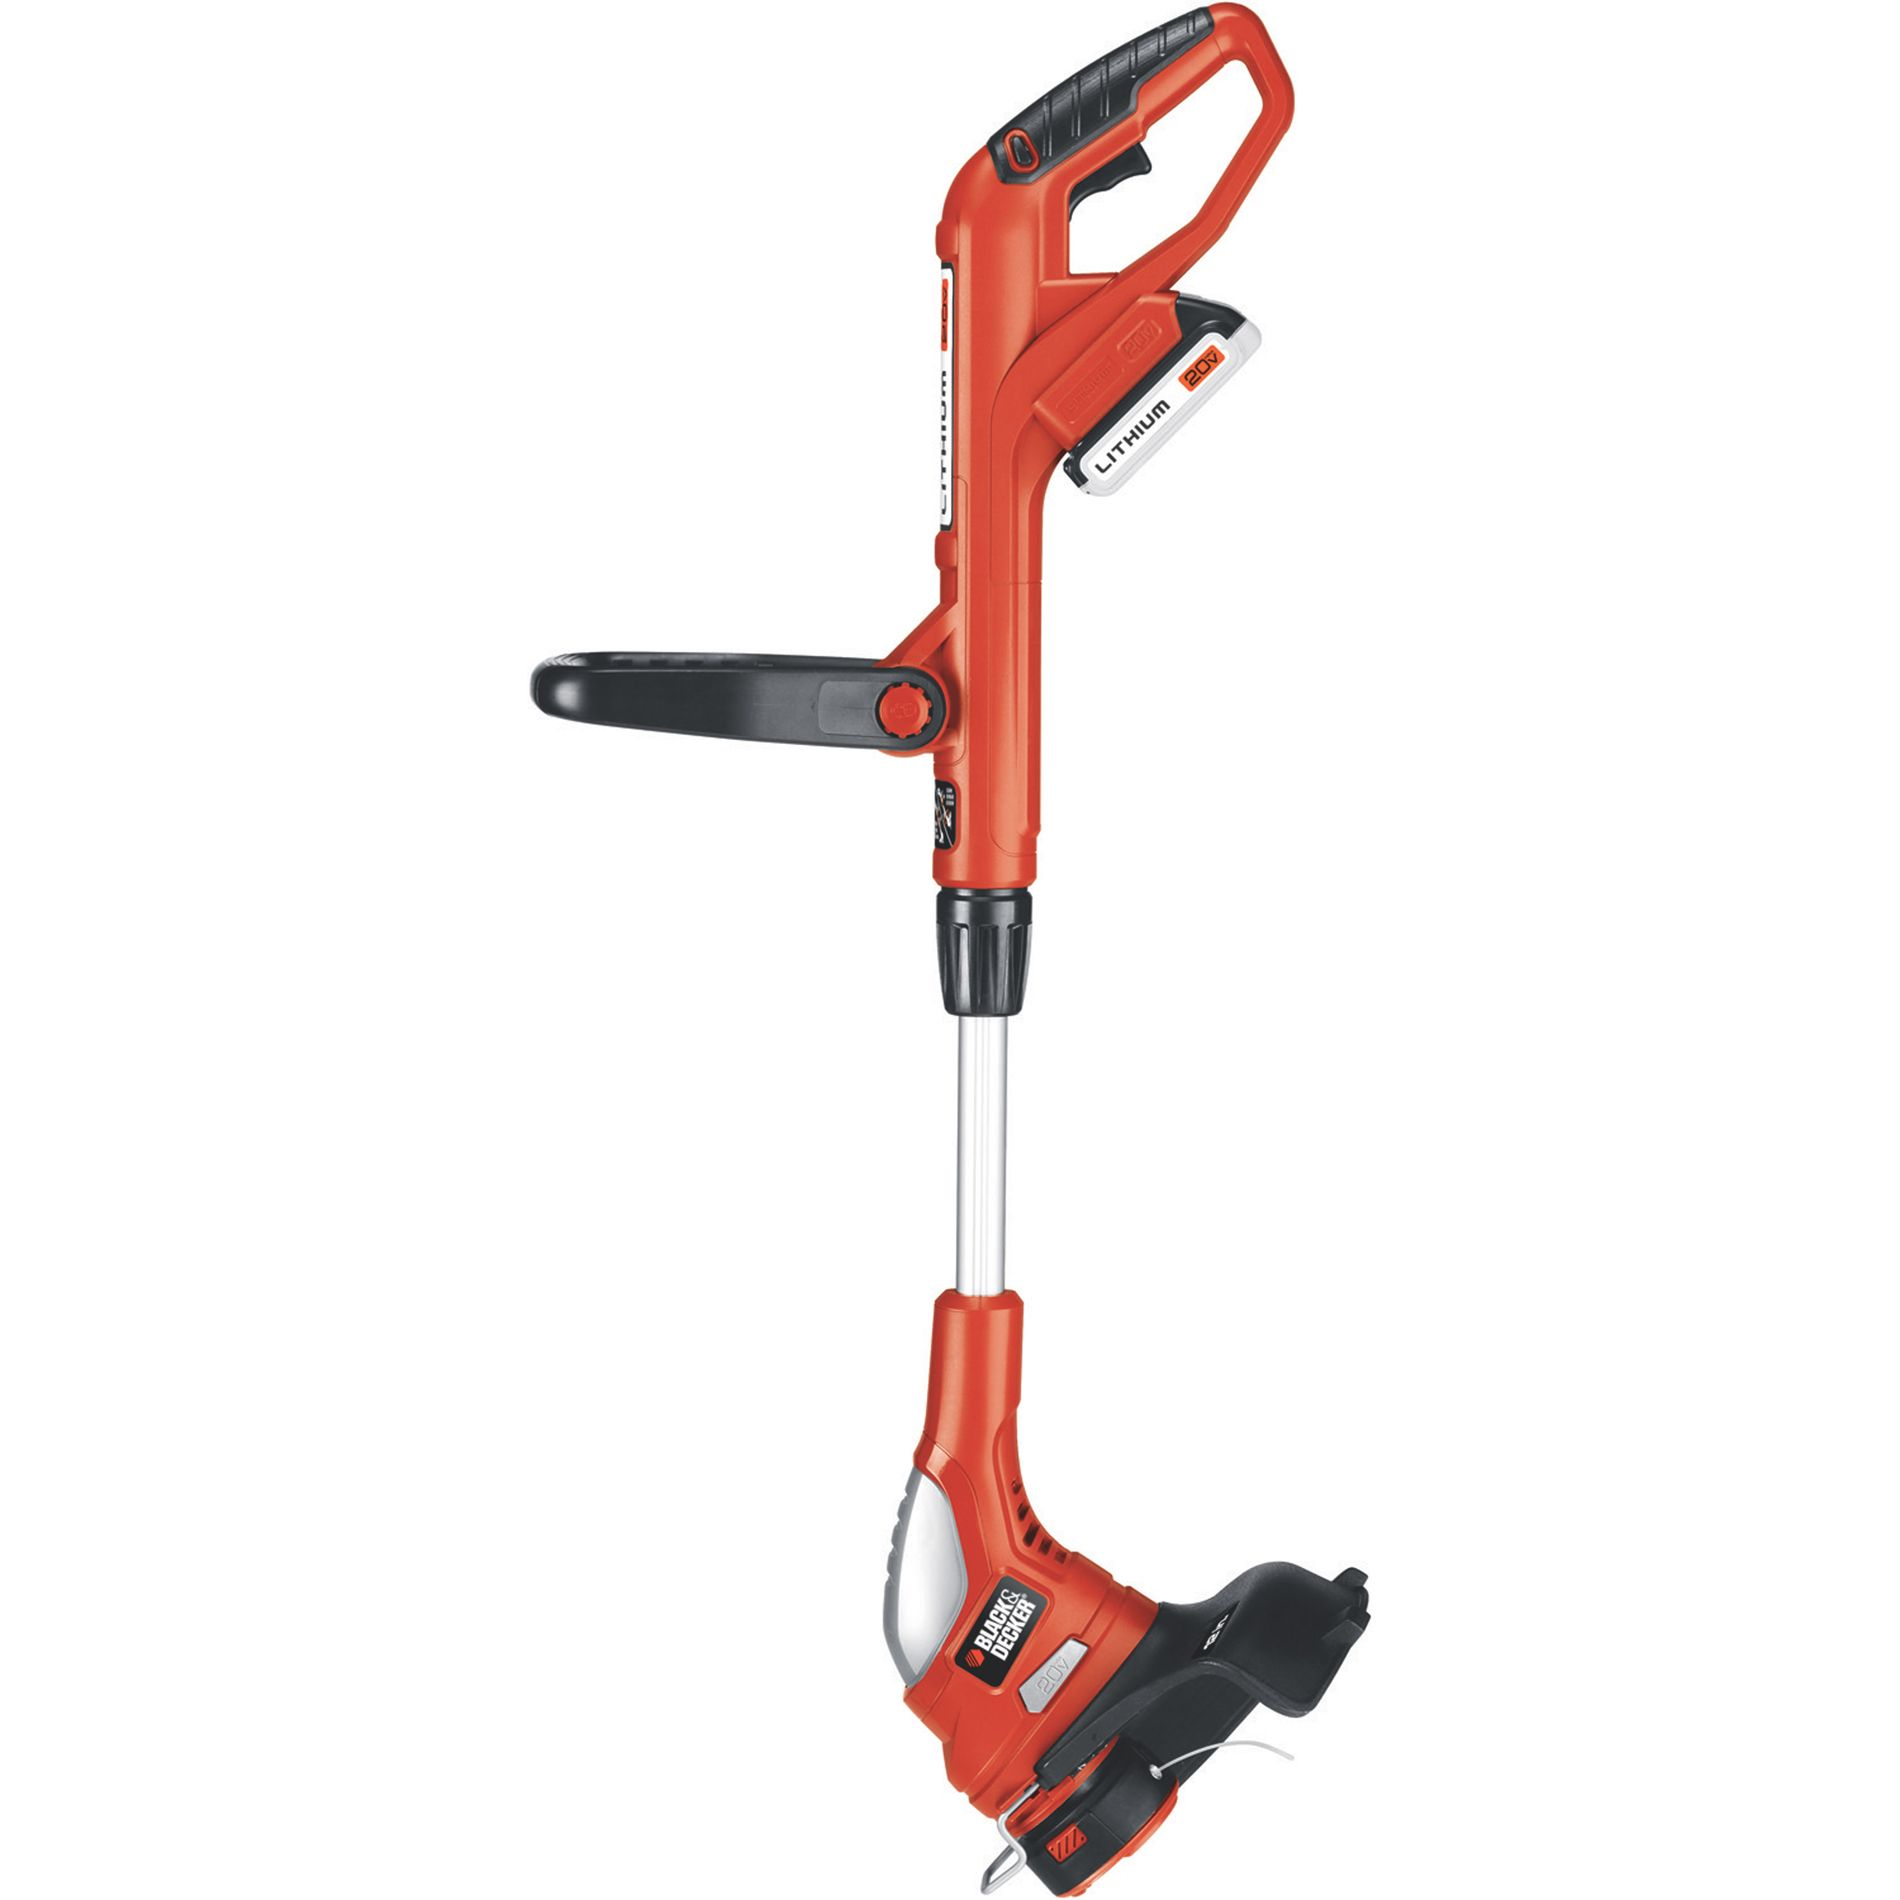 Black & Decker 20V Lithium Cordless Trimmer/Edger